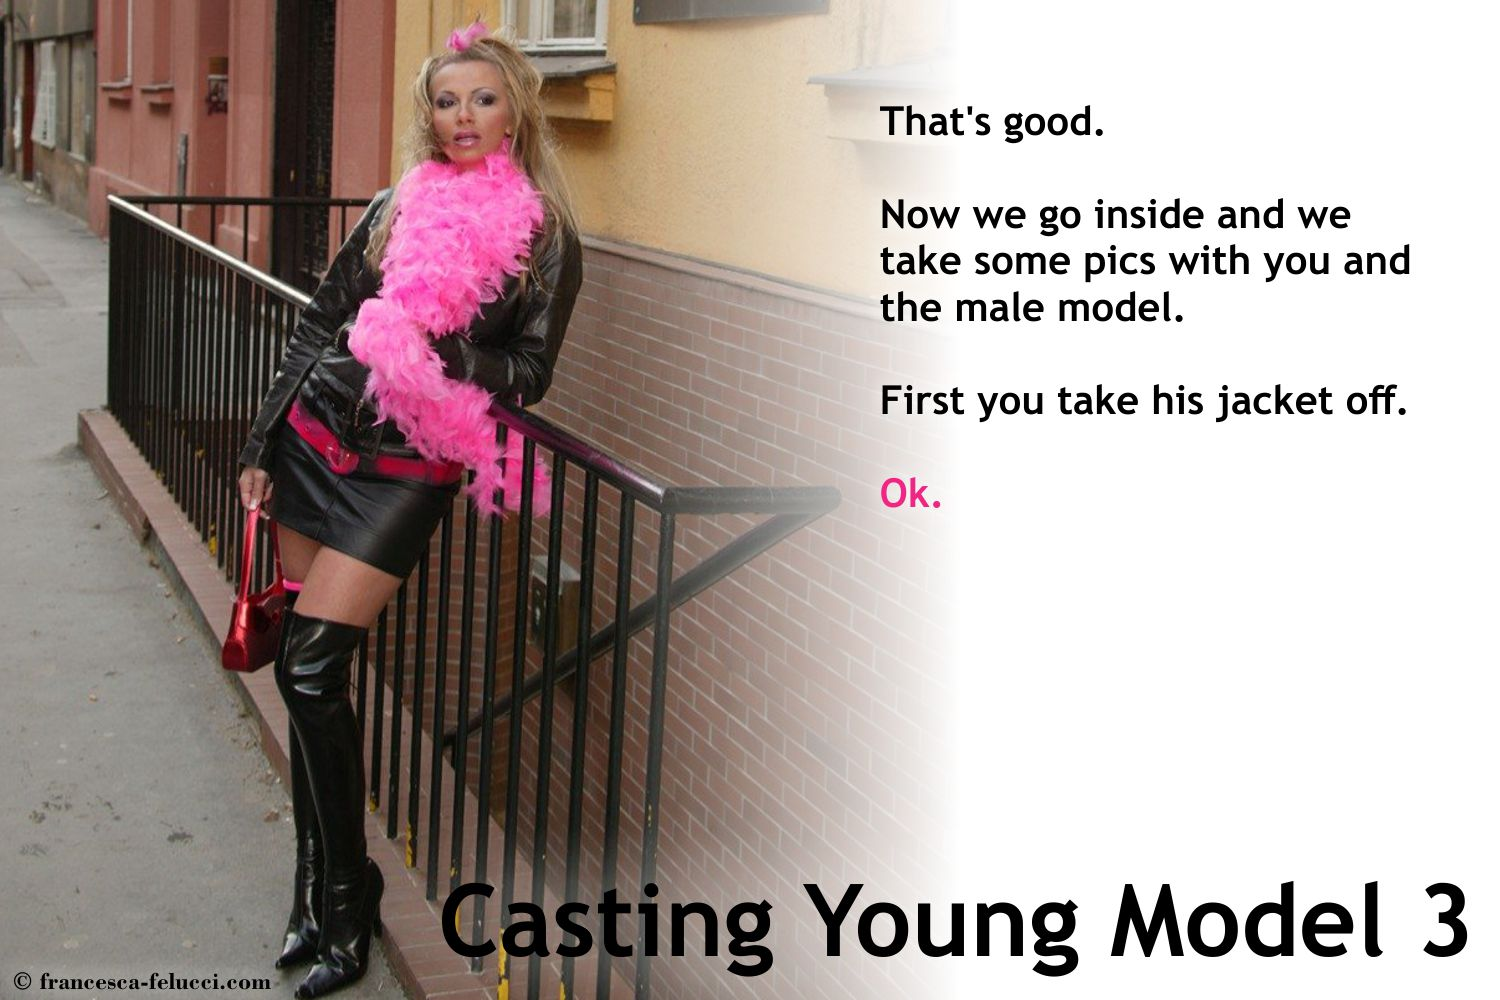 casting_young_model_3_002